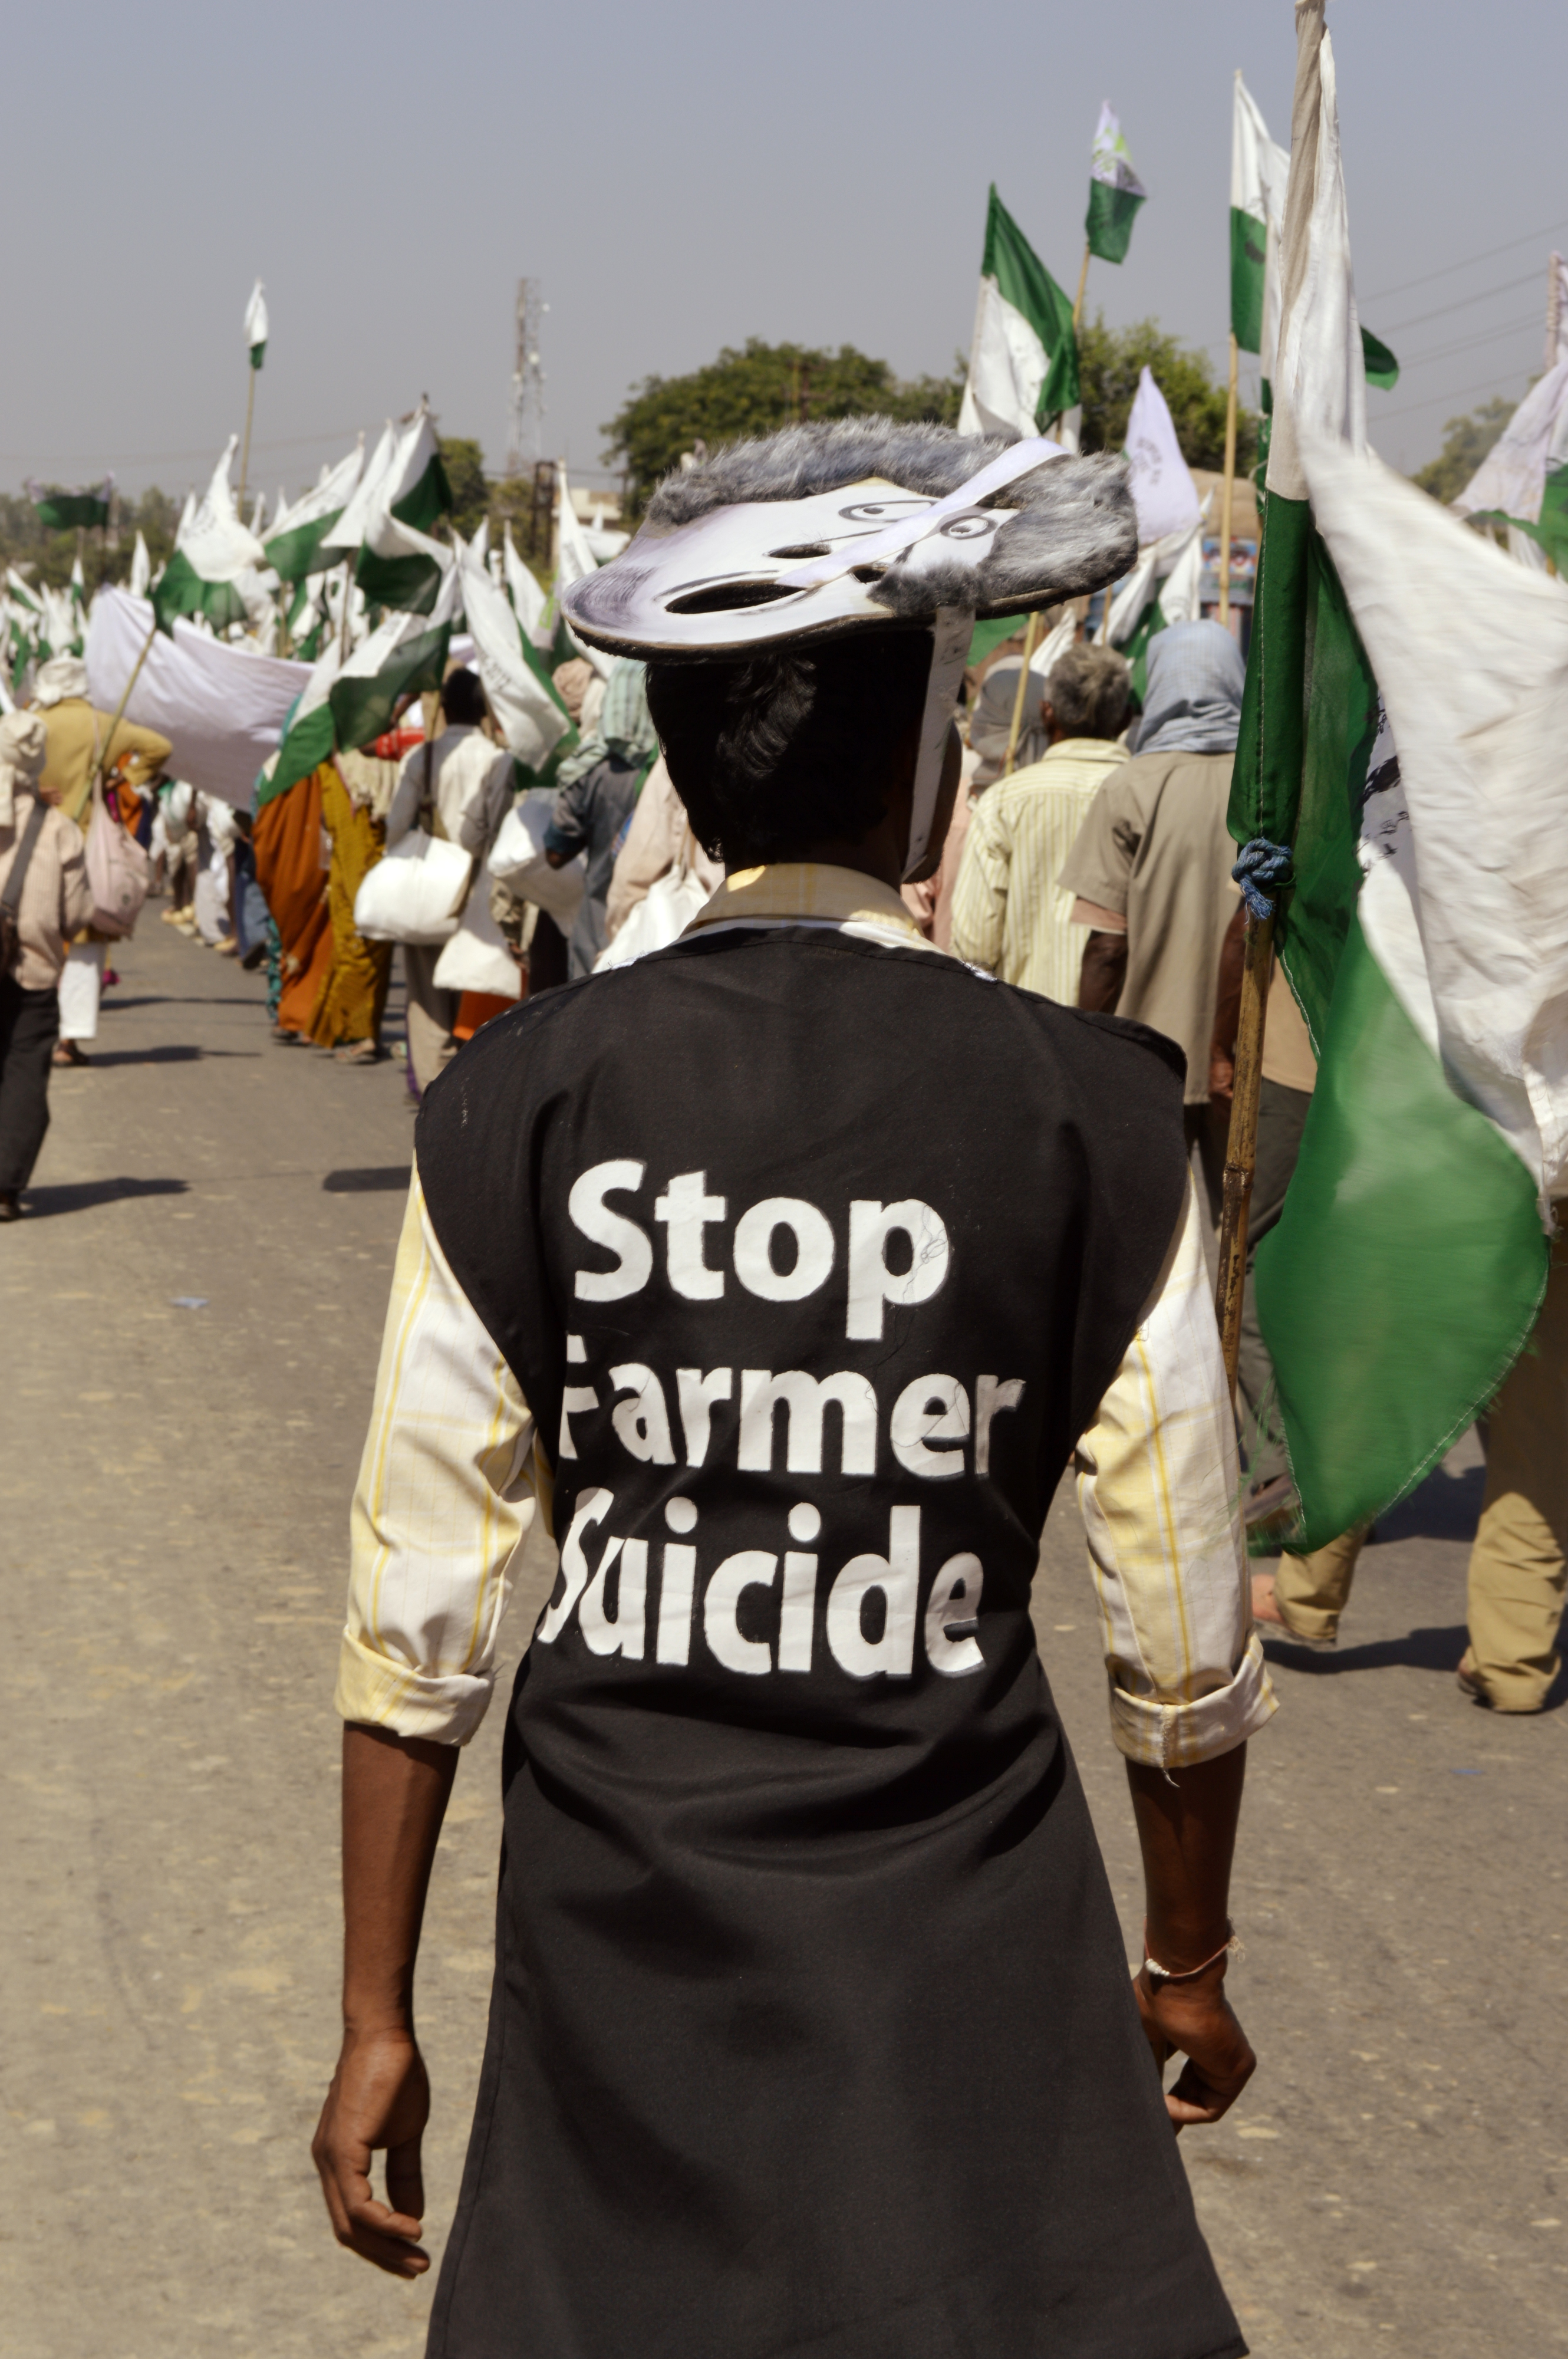 farmer suicide in india In other words, the farmers in india commit suicide after getting upset by economic exploitation at the hands of the landlords and the moneylenders it has also been seen at times that the farmers also commit suicide after they receive excessive yields in their fields.